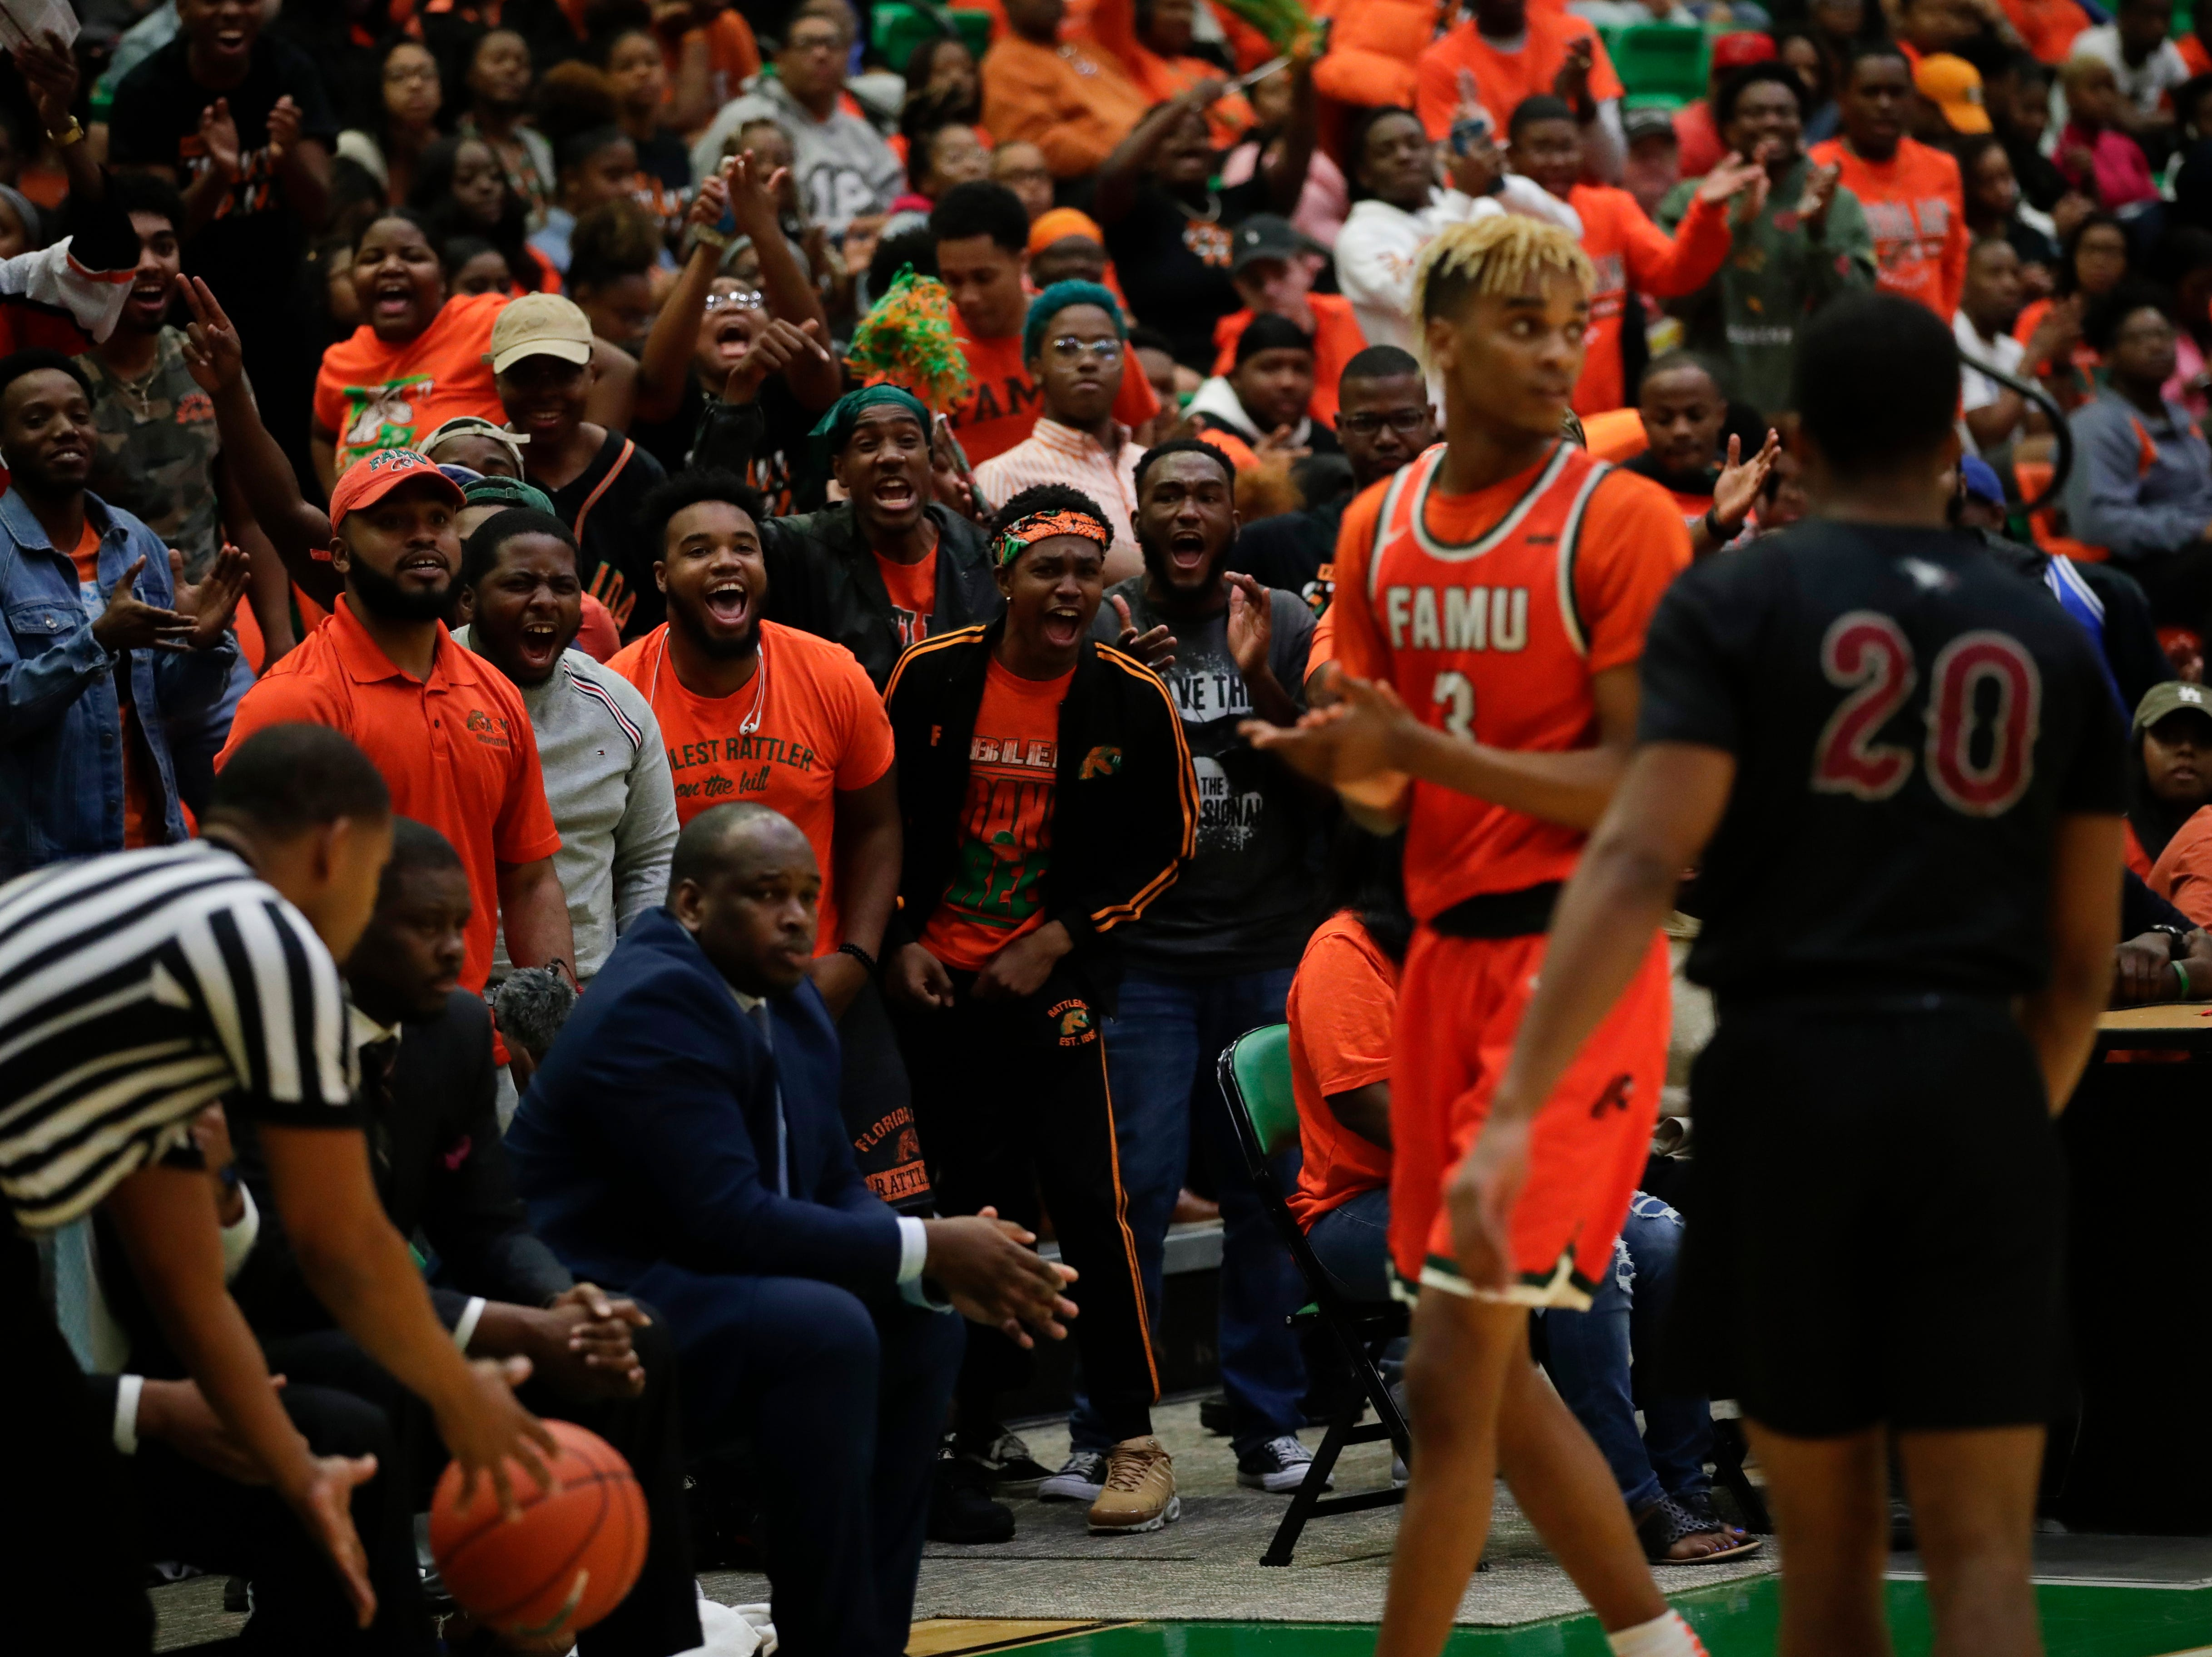 The Florida A&M student section taunts NCCU players at the Alfred Lawson Jr. Multipurpose Center Monday, Feb. 4, 2019.